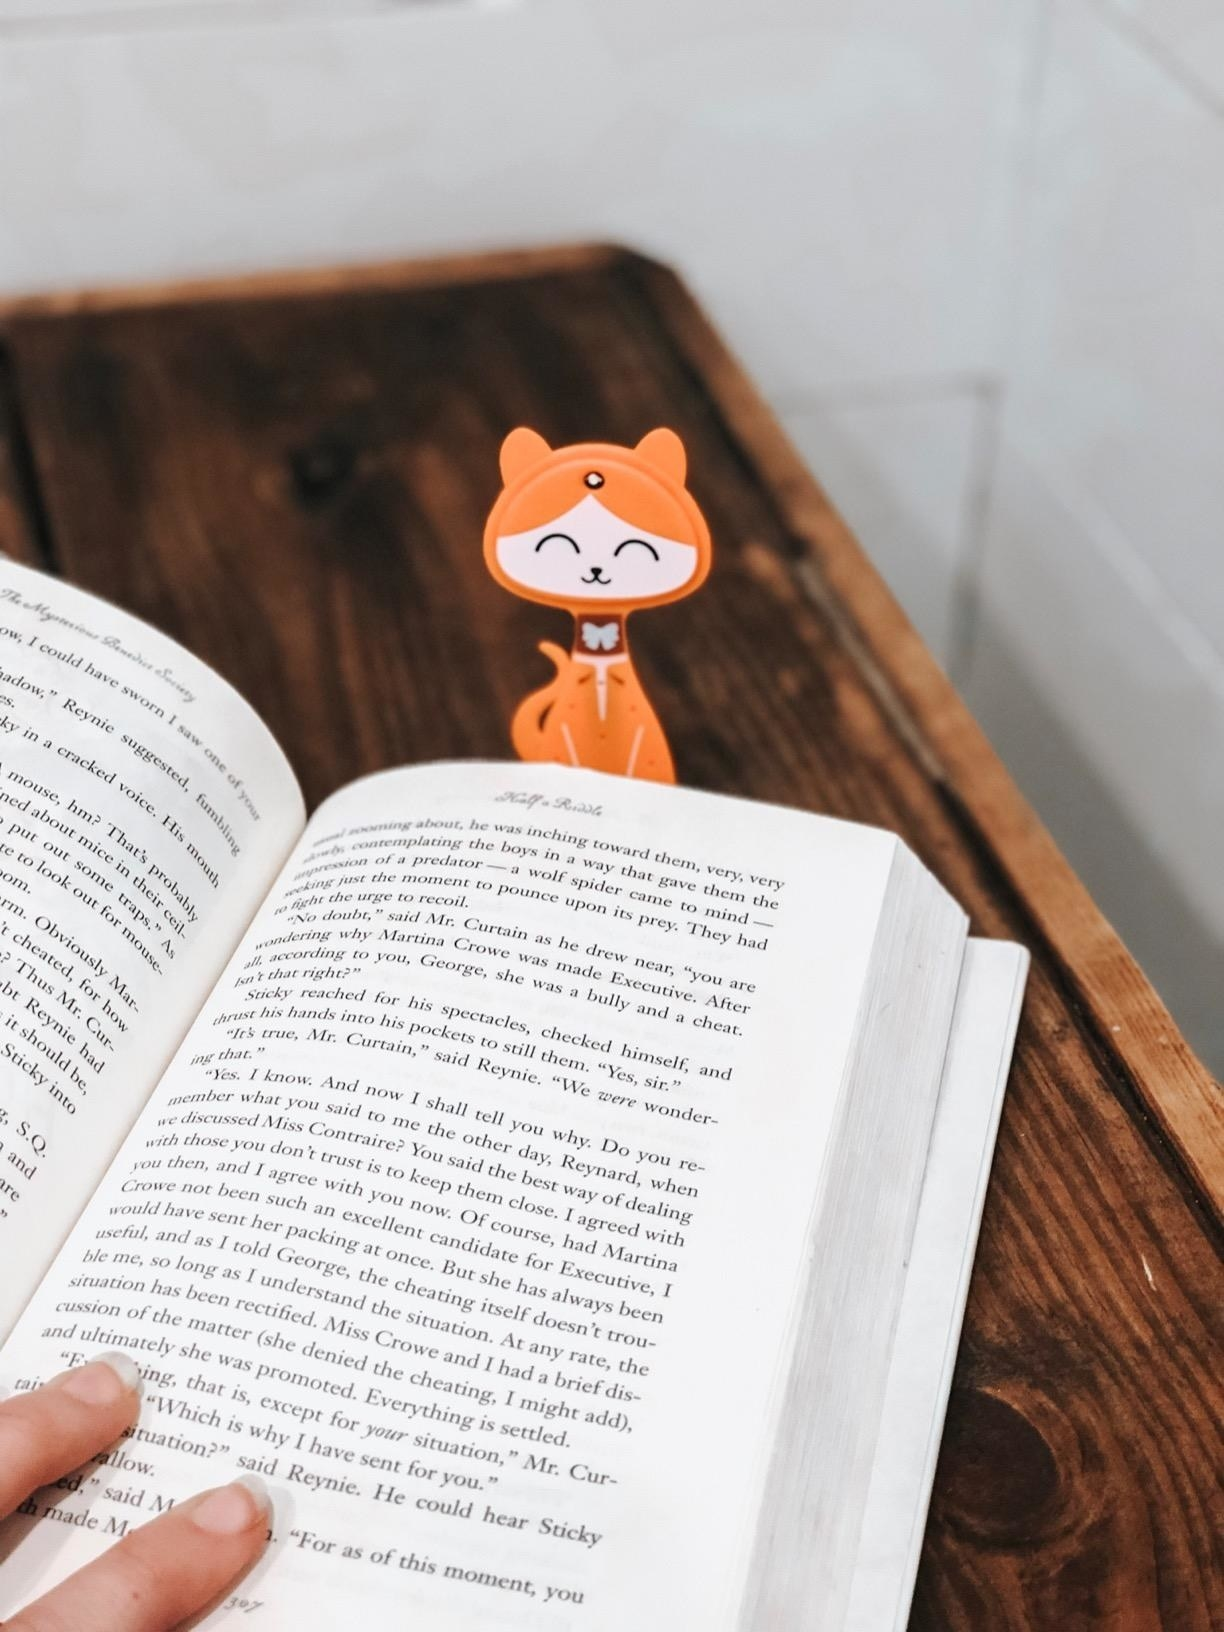 flat cat bookmark with light on forehead slipped into a book